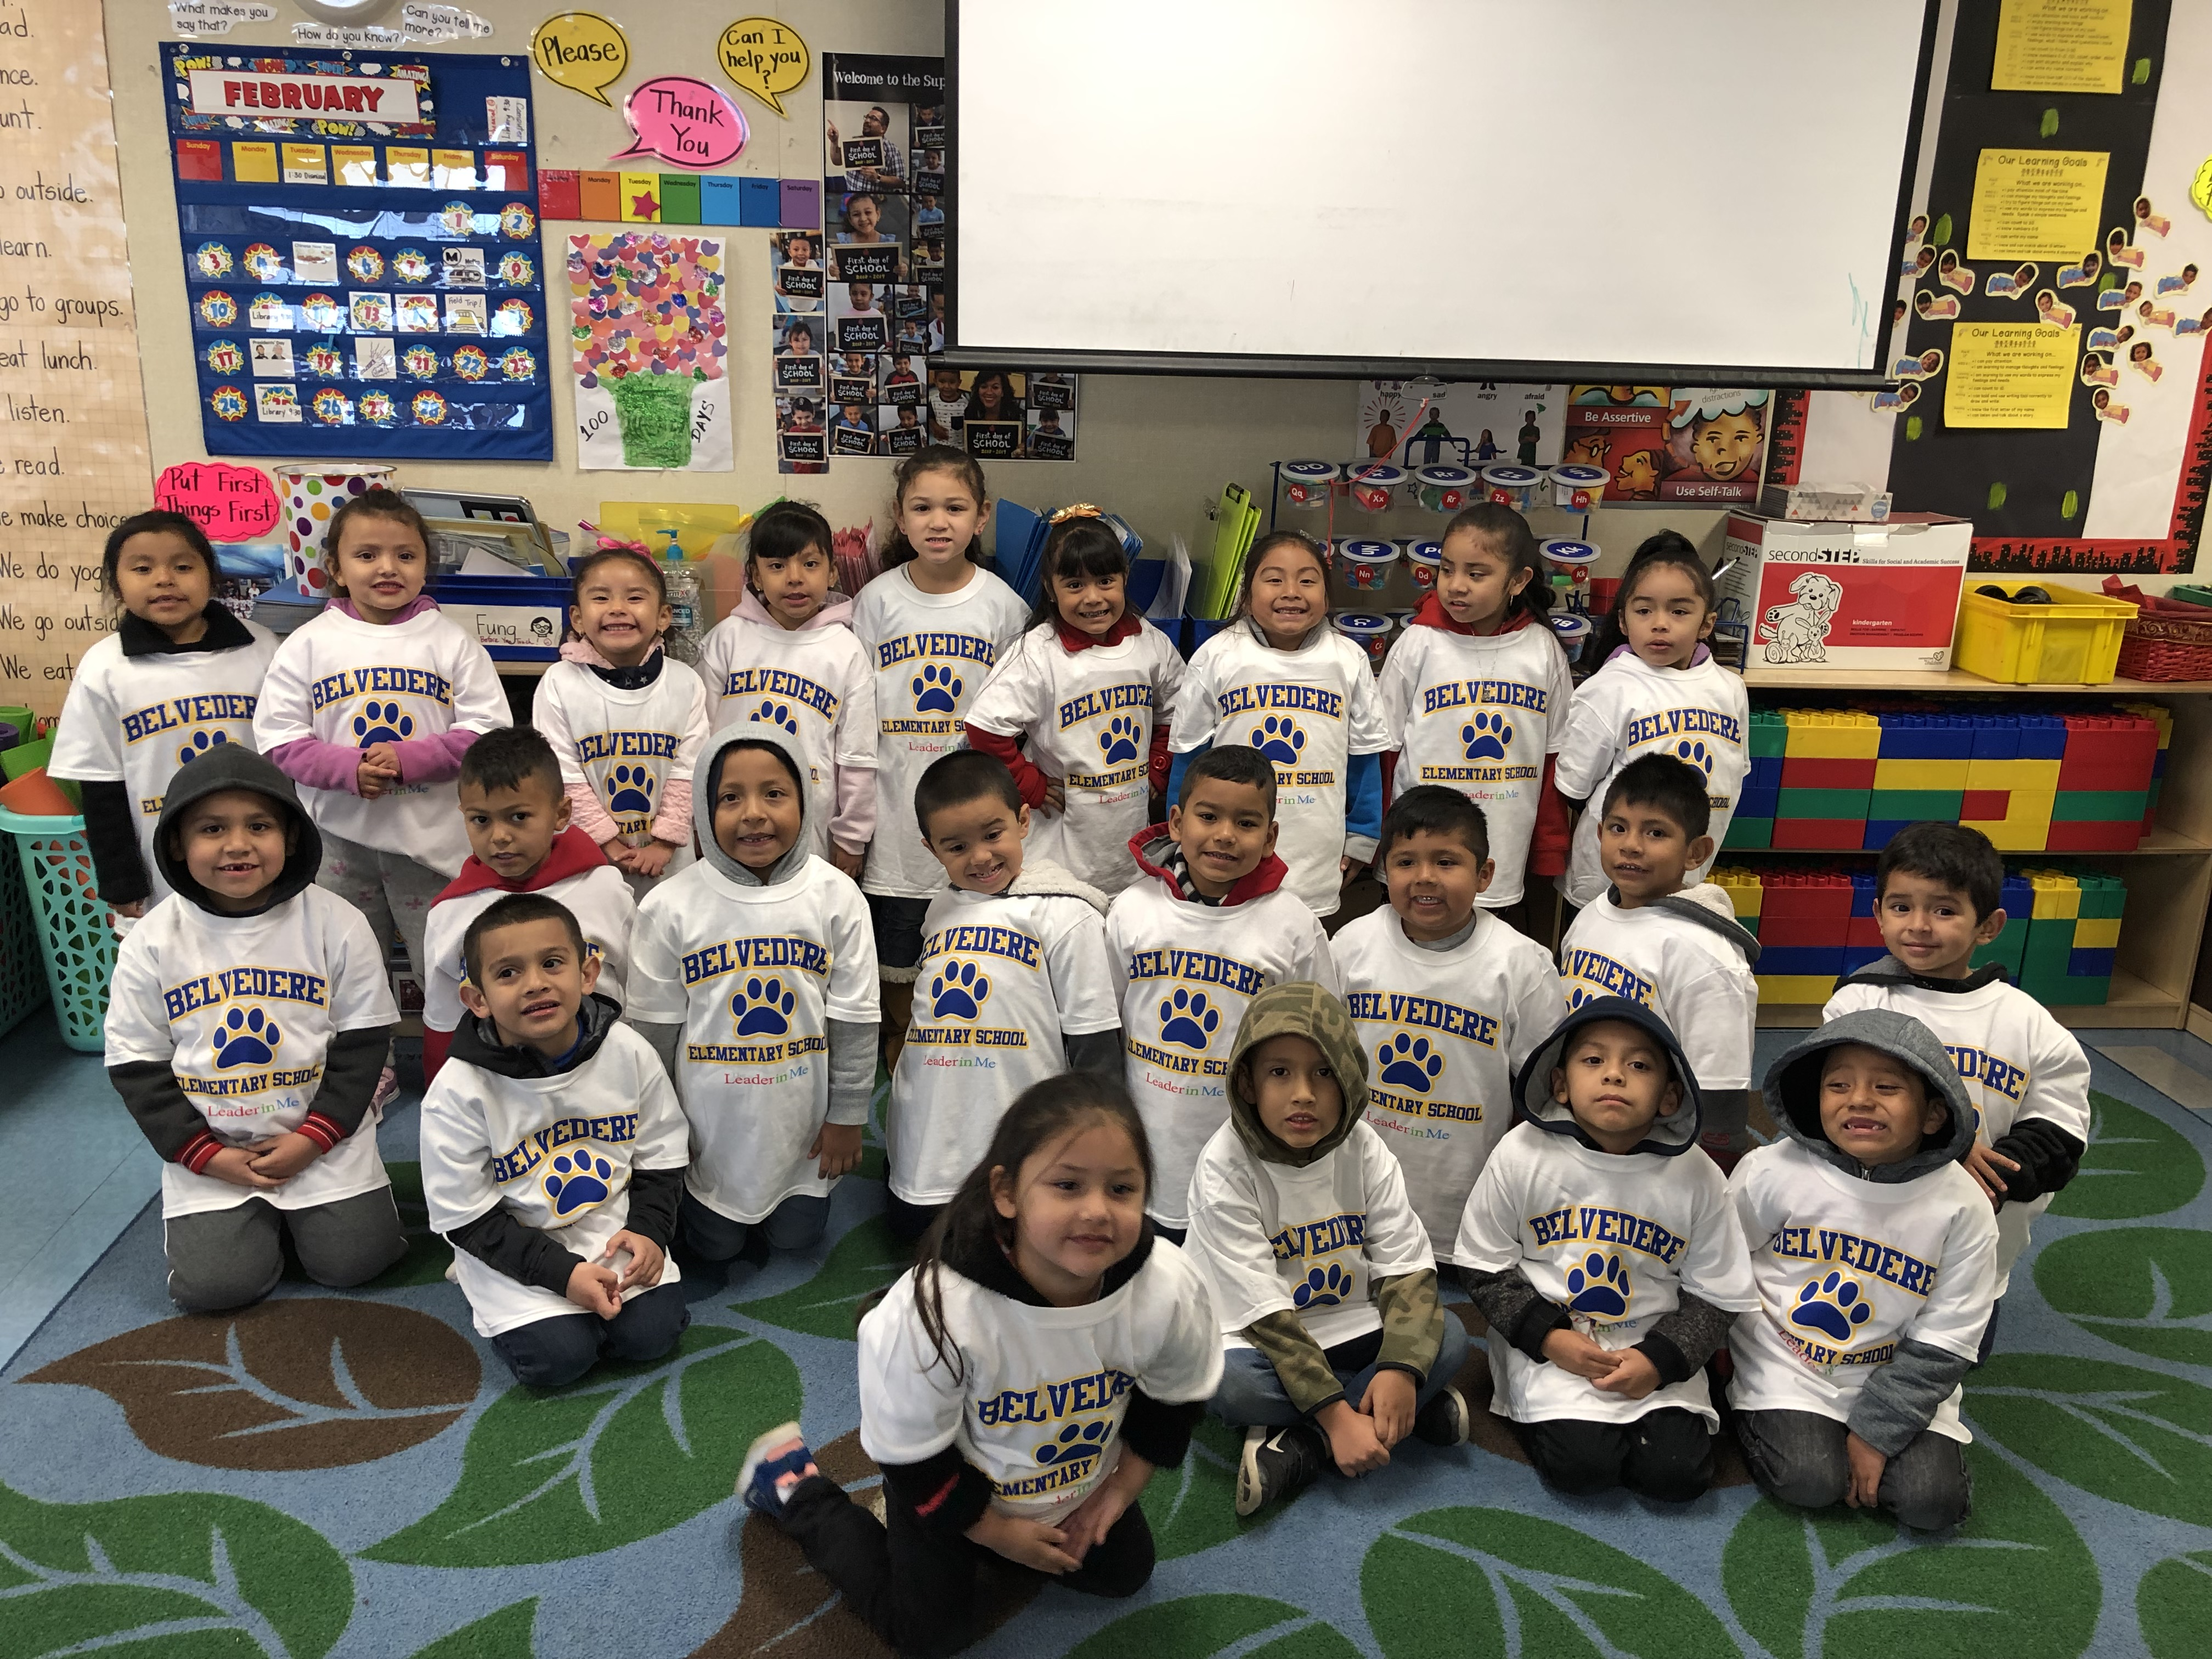 We are Room 27!